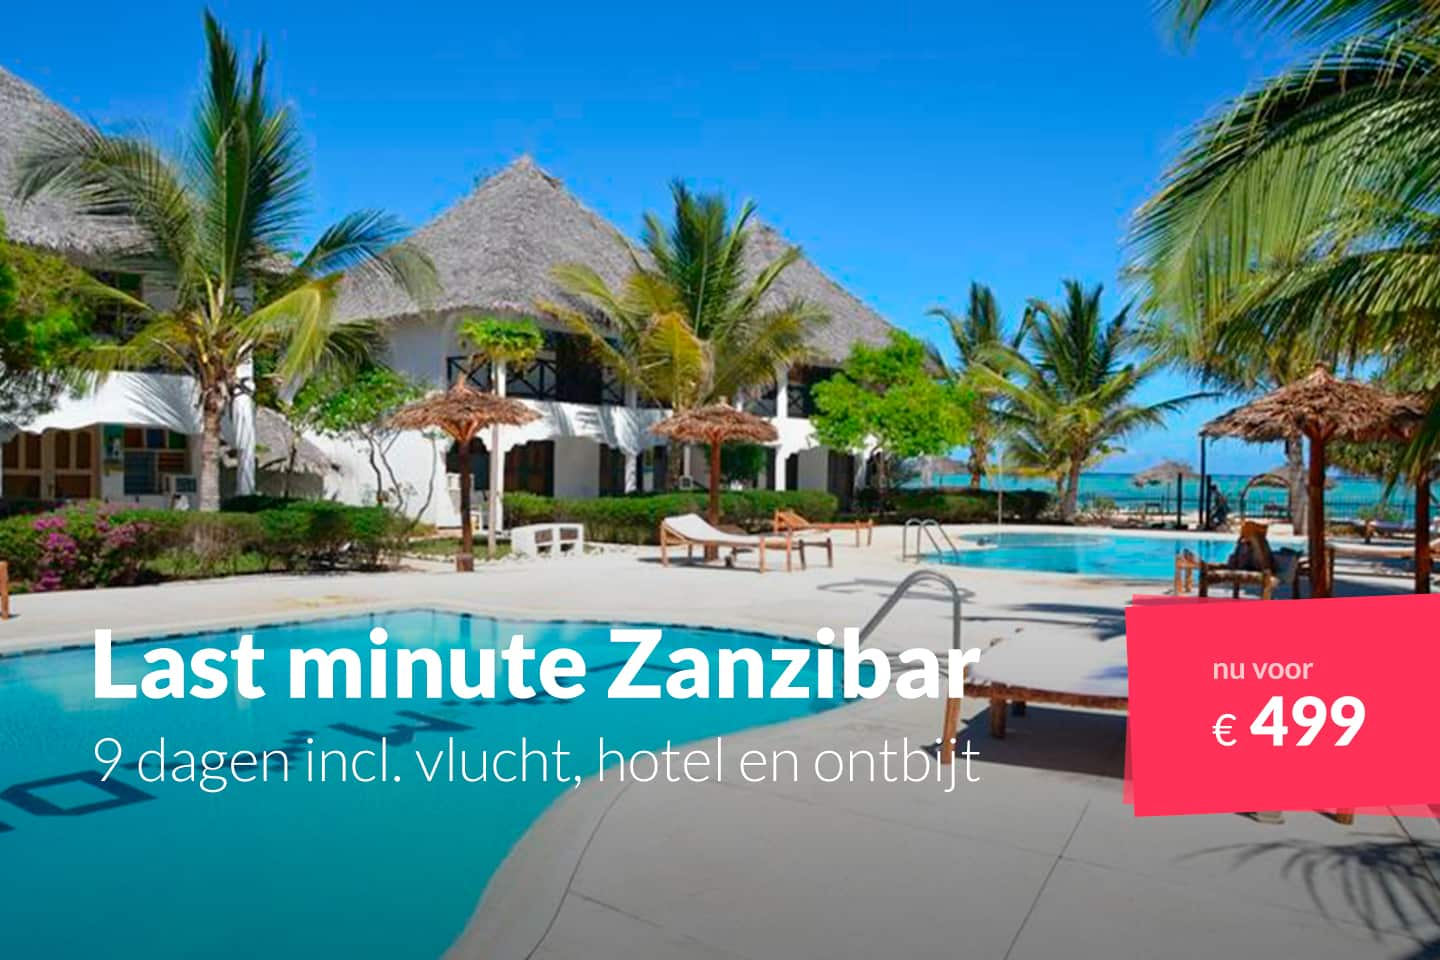 last minute zanzibar 9 dagen incl vlucht hotel en ontbijt voor 499. Black Bedroom Furniture Sets. Home Design Ideas